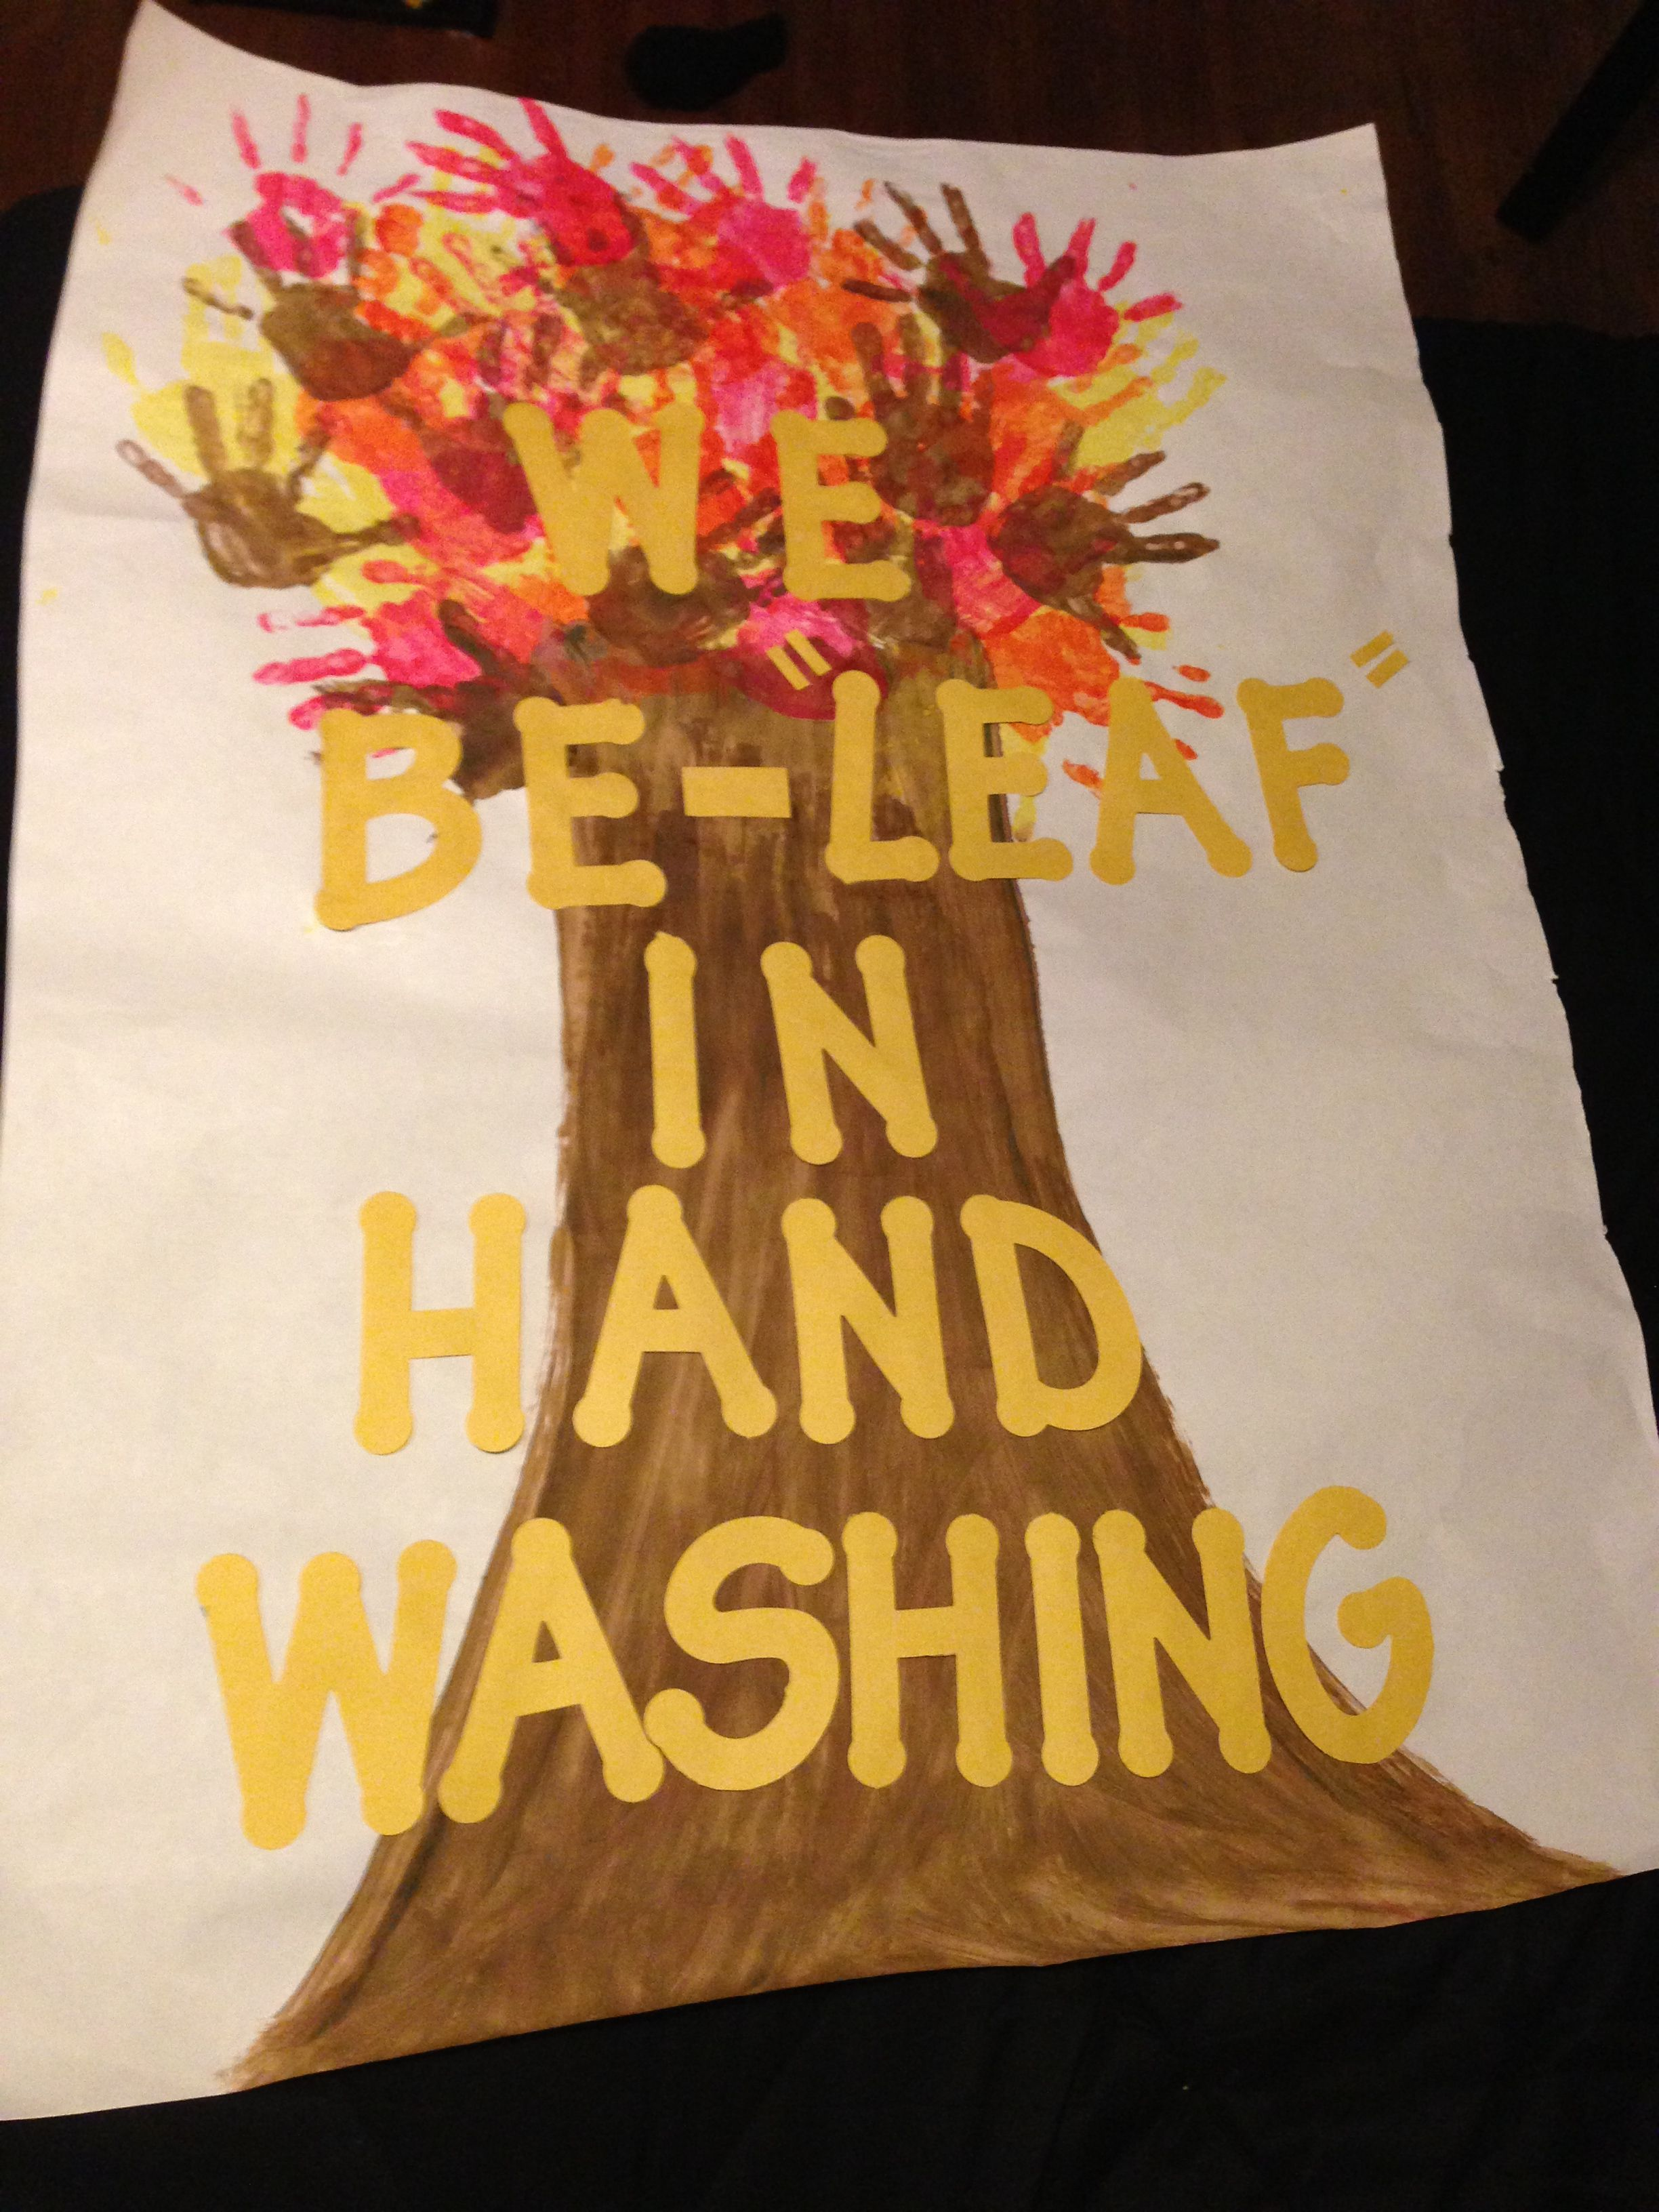 Back To School Hand Washing Poster For Pre K Through Elementary School Aged Students My Kids